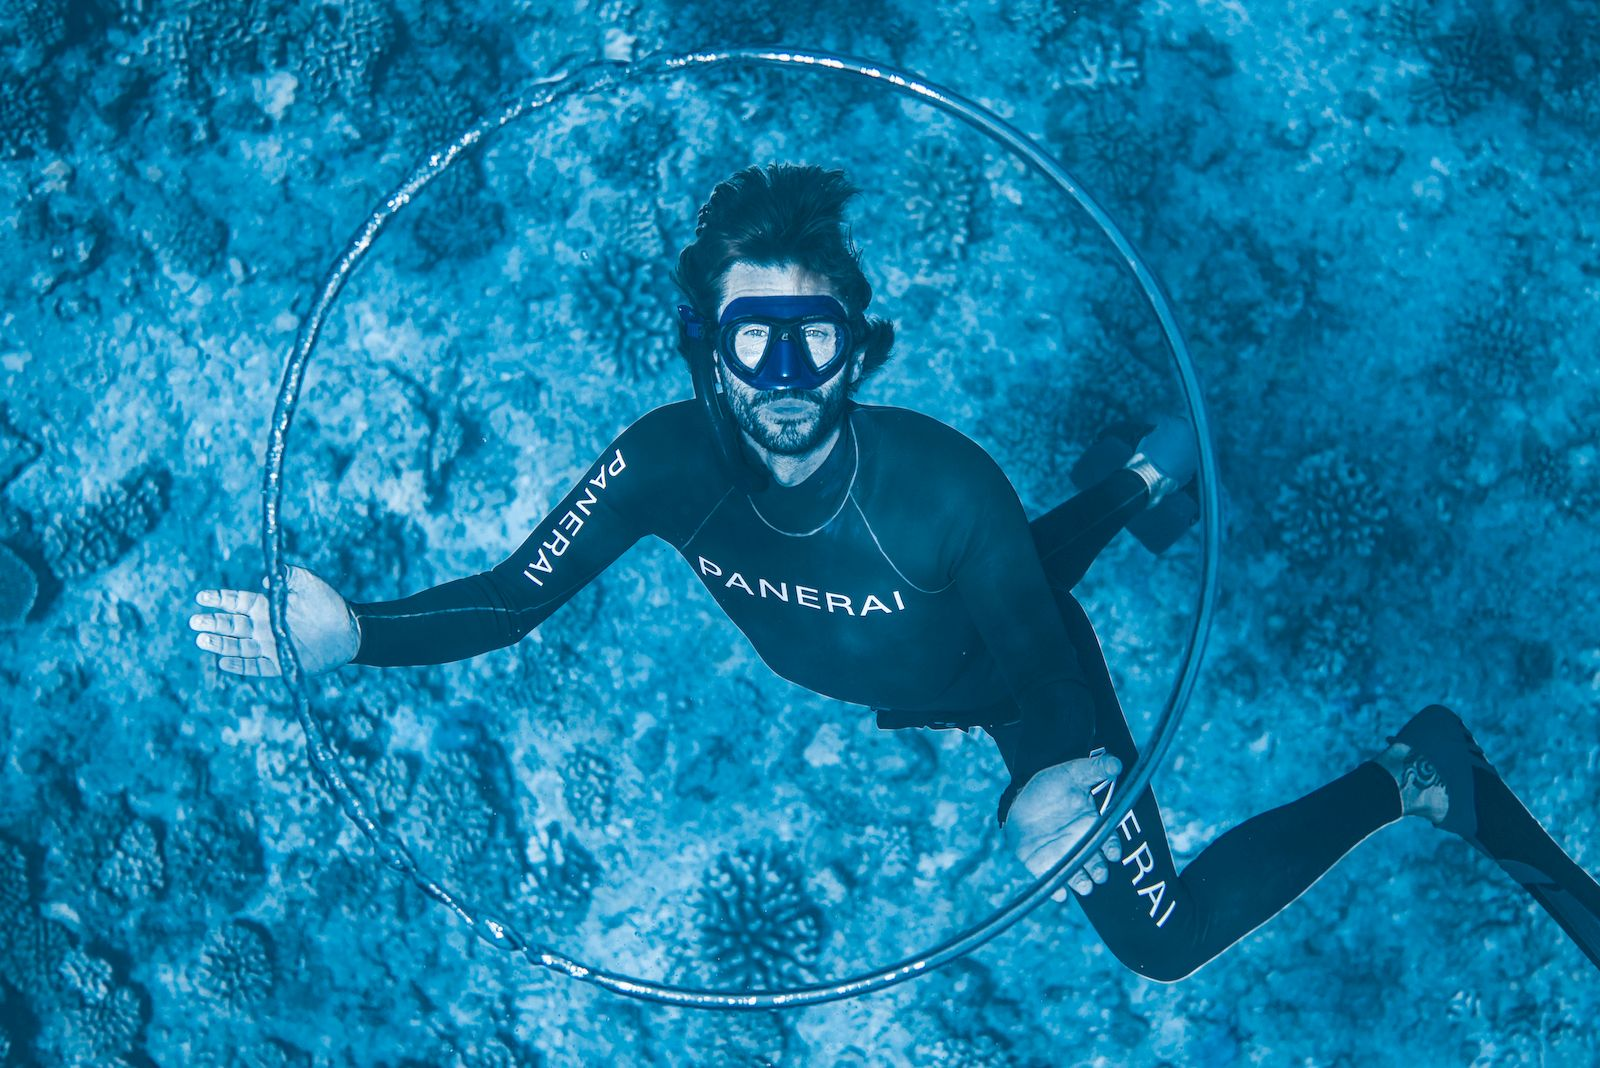 Panerai and freediving champ Guillaume Néryh take the concept of luxury experiences to new depths